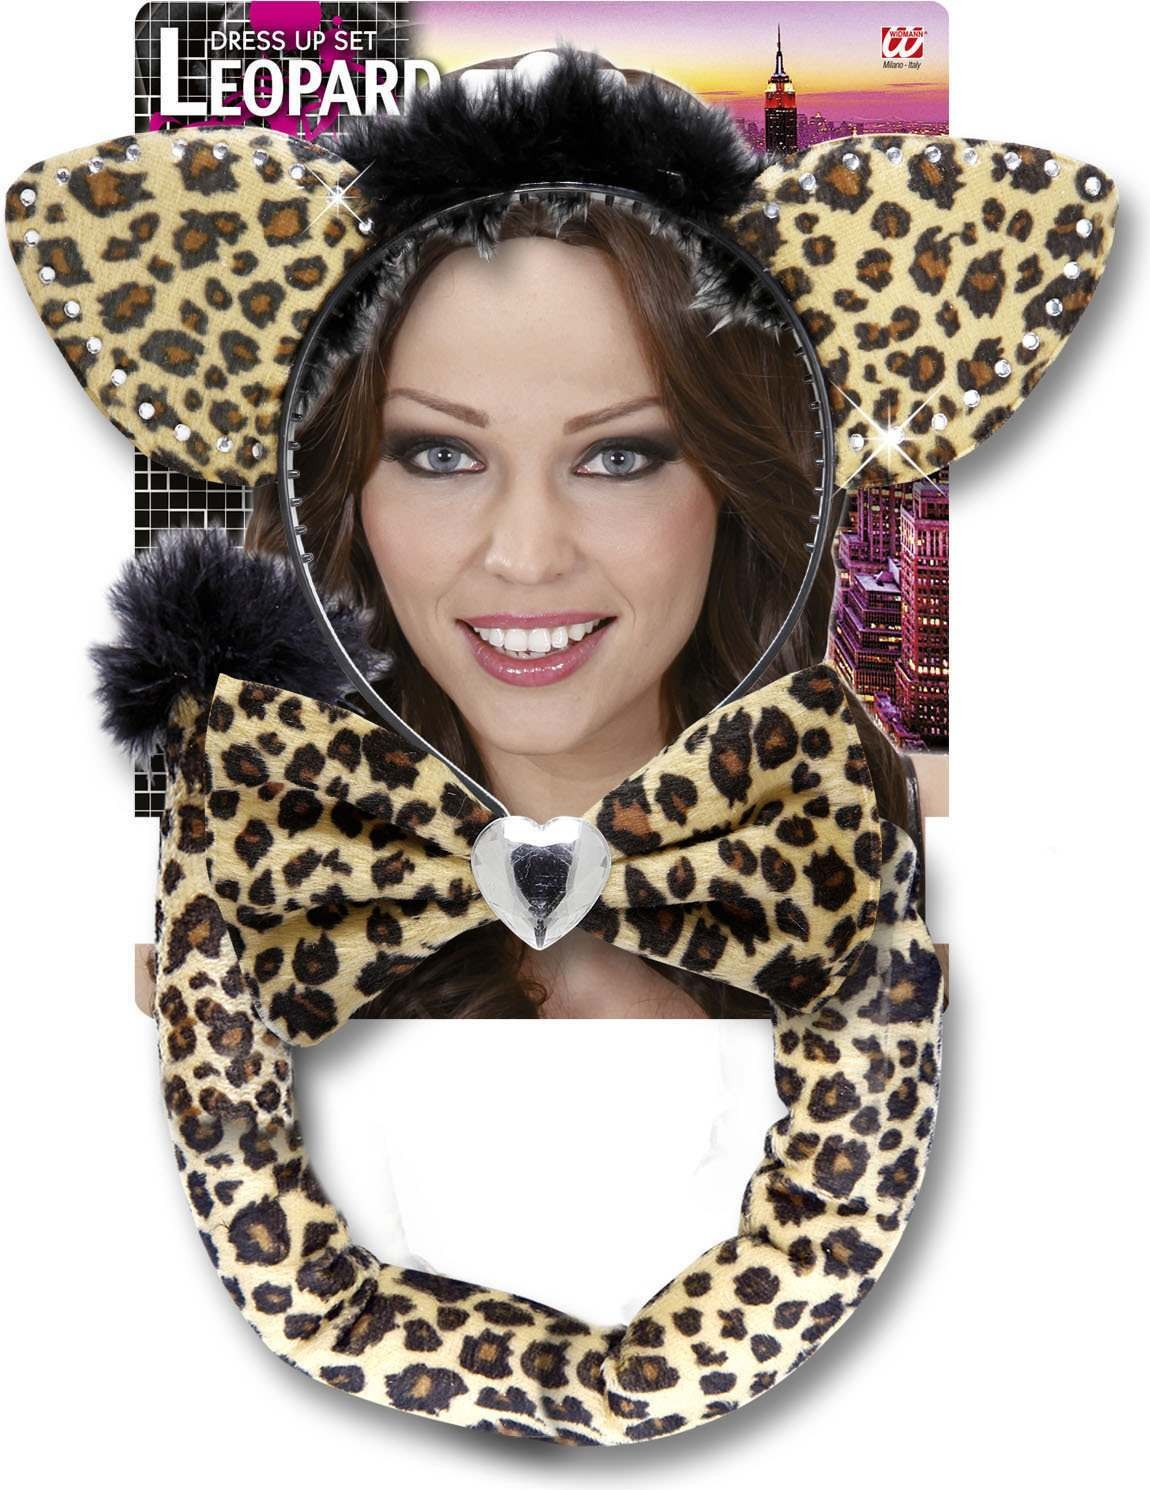 Leopard Dress Up Sets Accessories